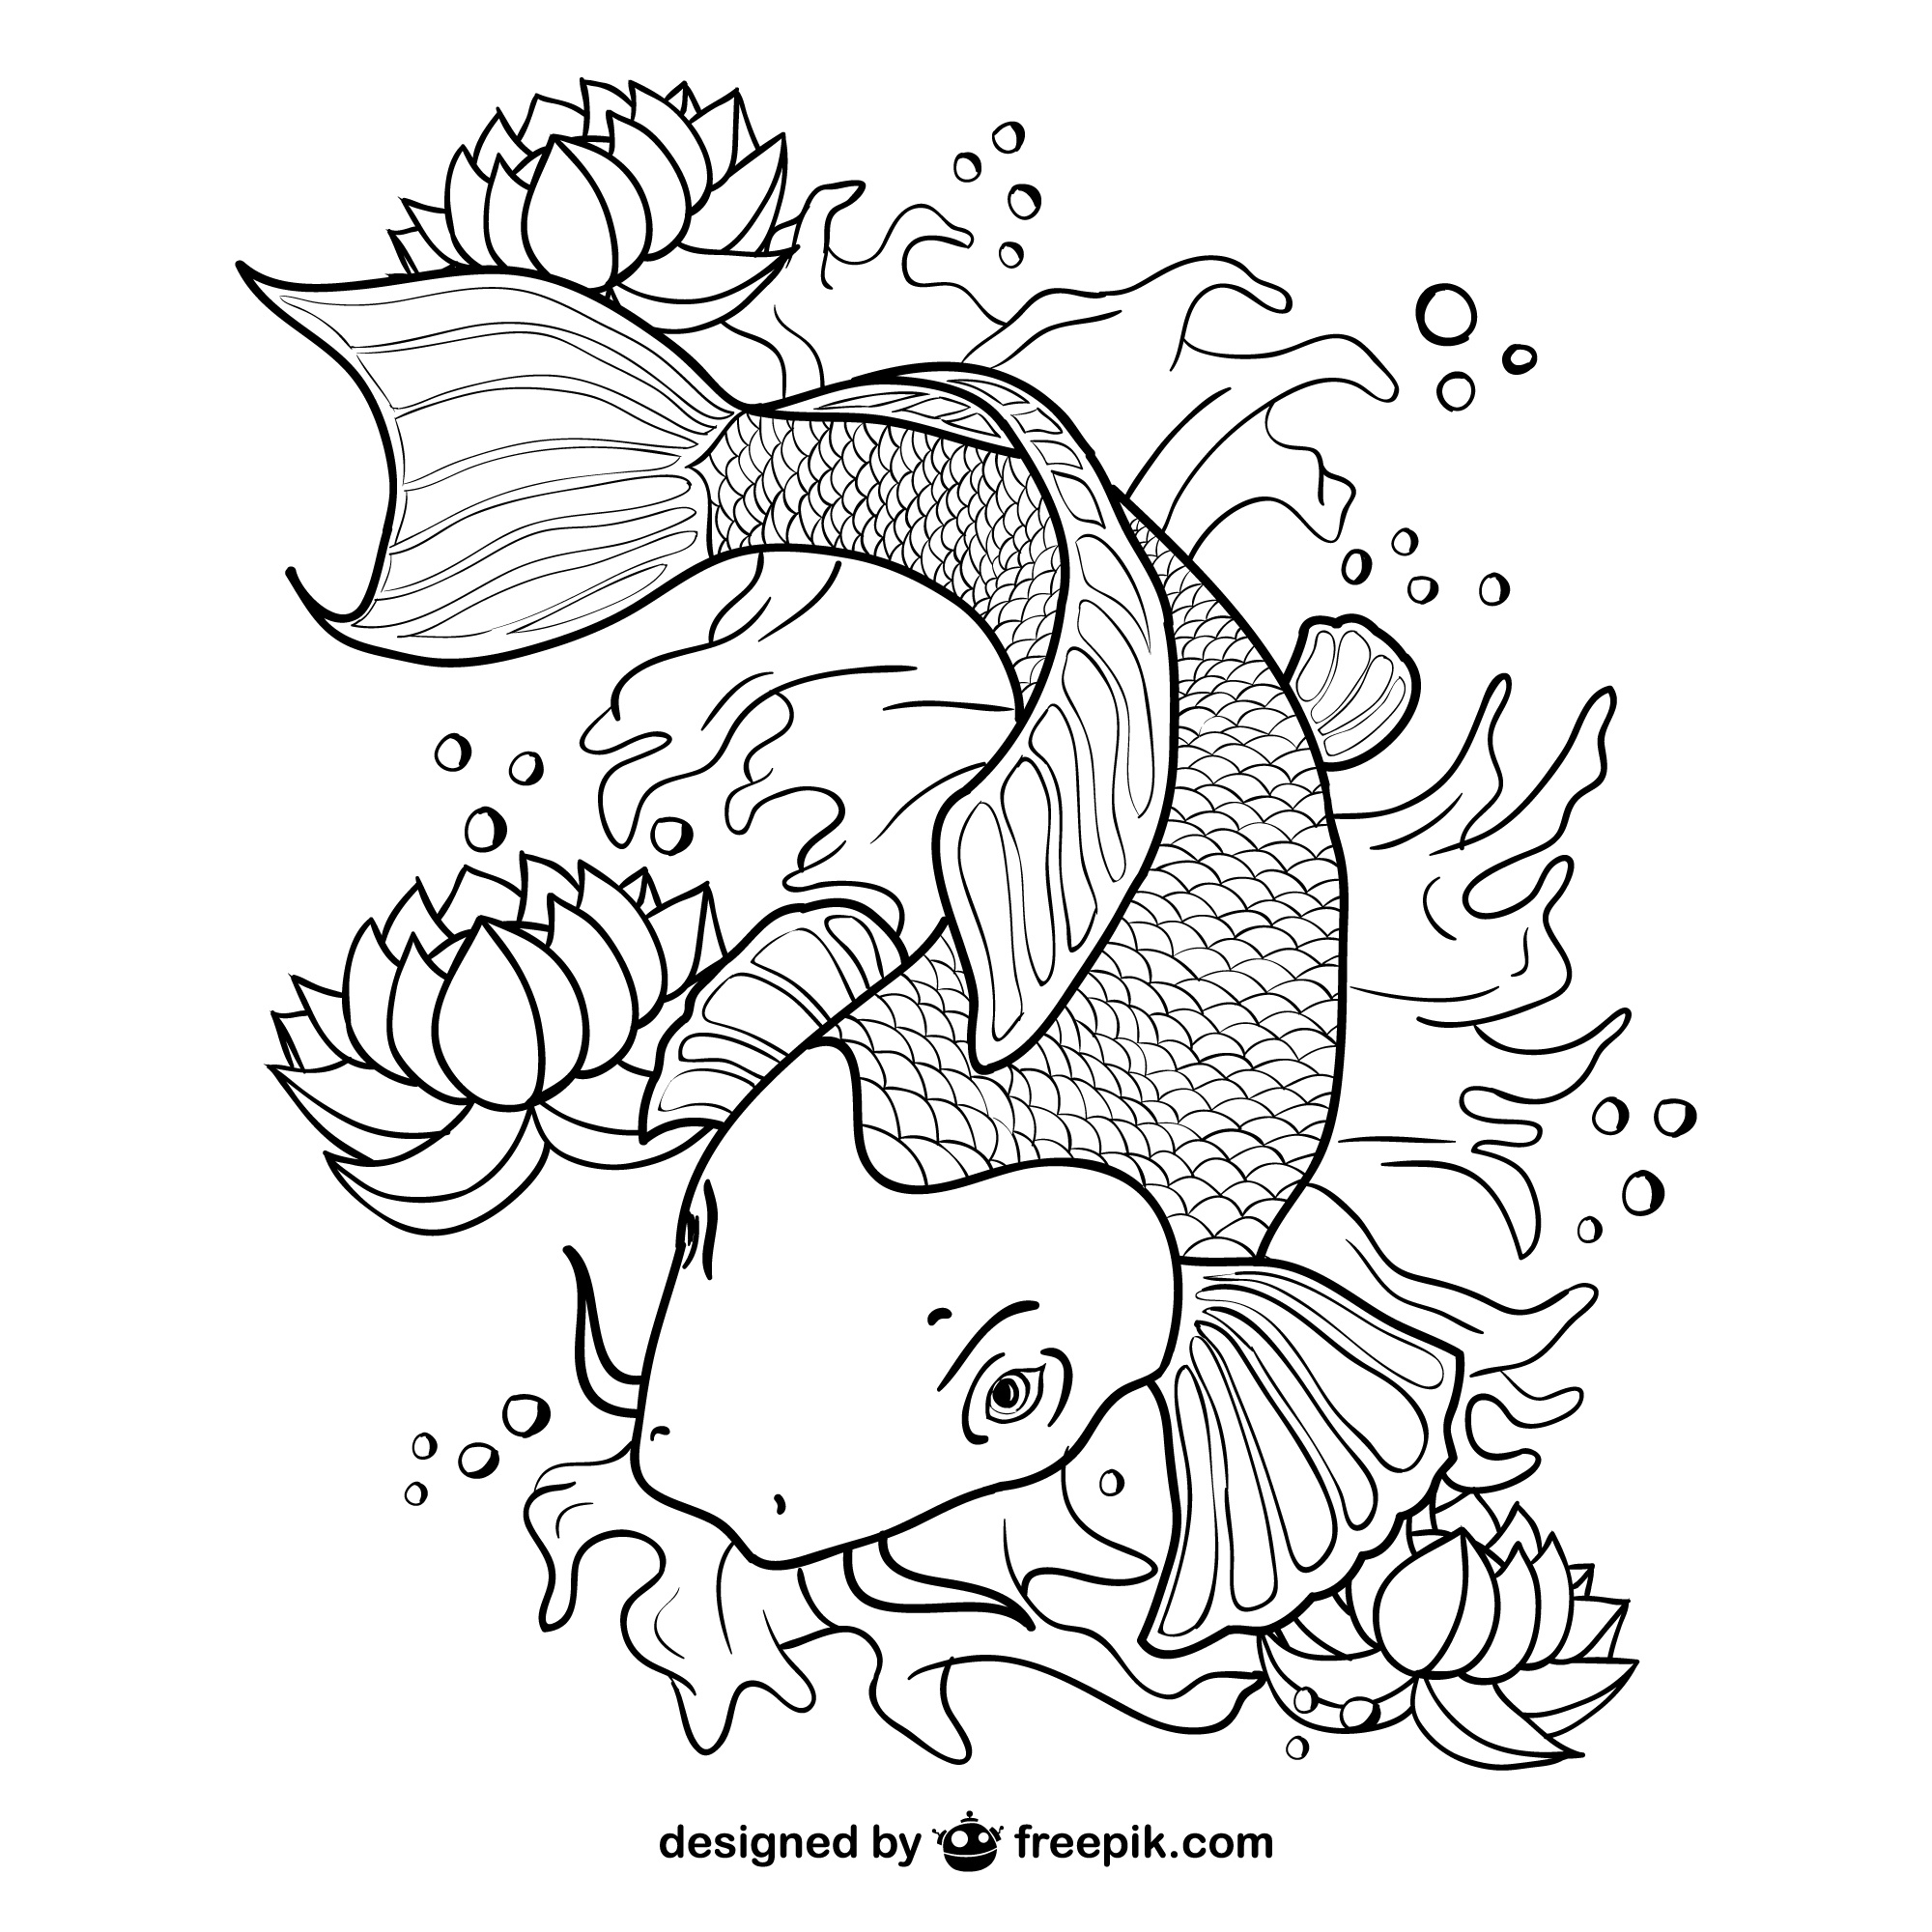 Koi fish line art vector